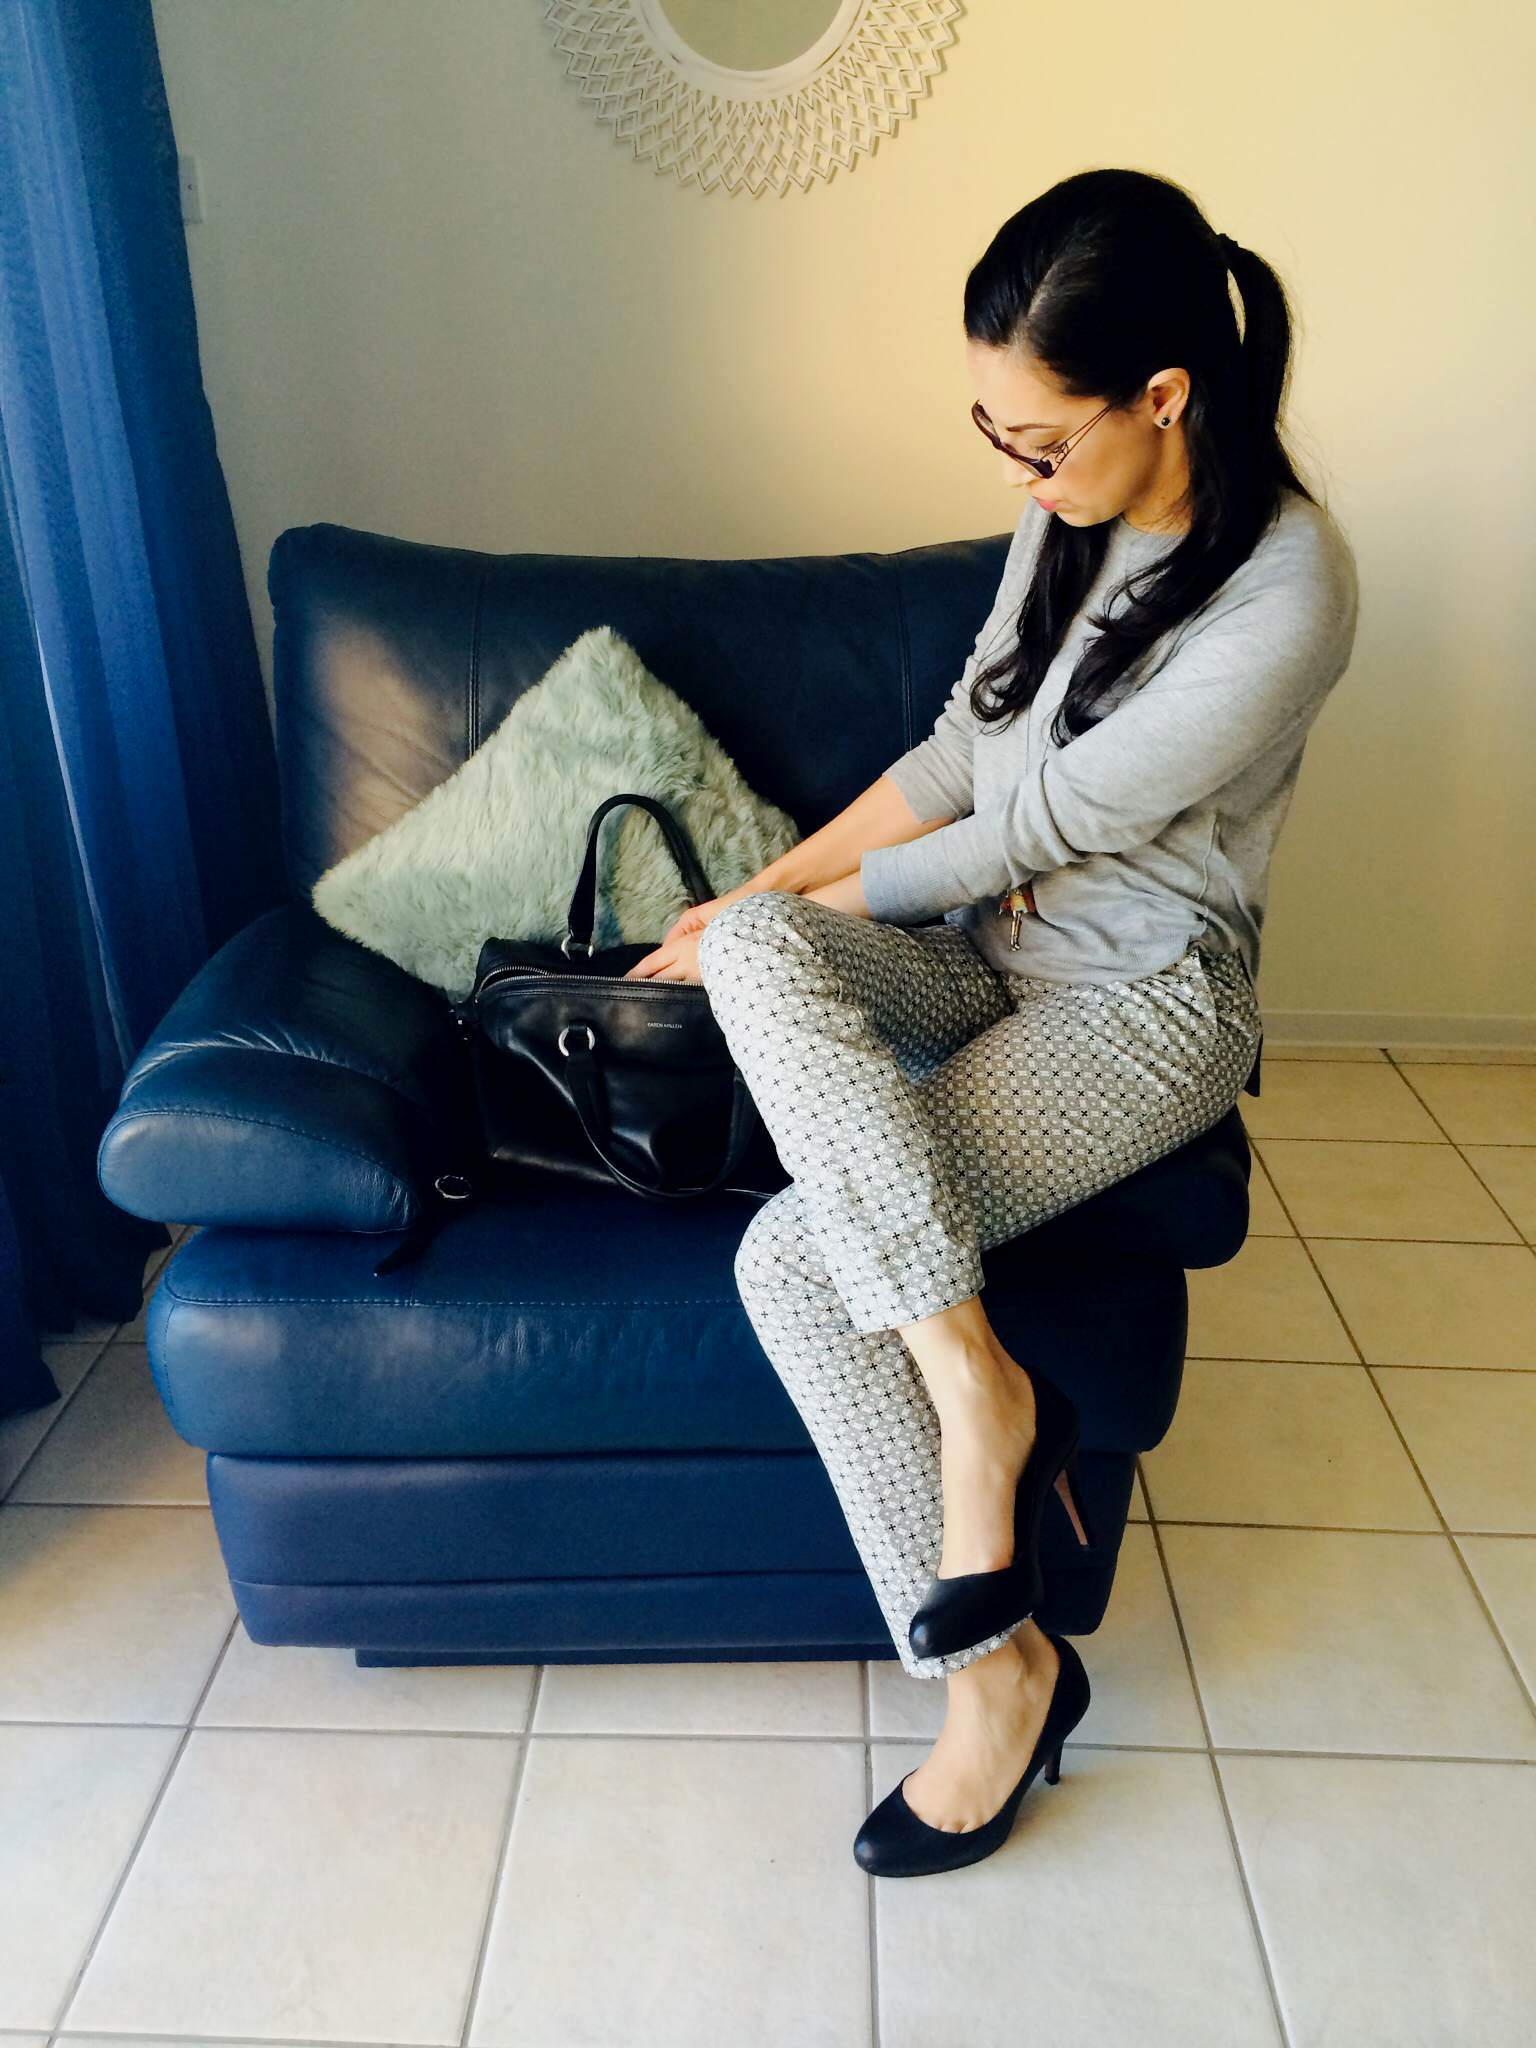 Of patterned pants and comfy heels!